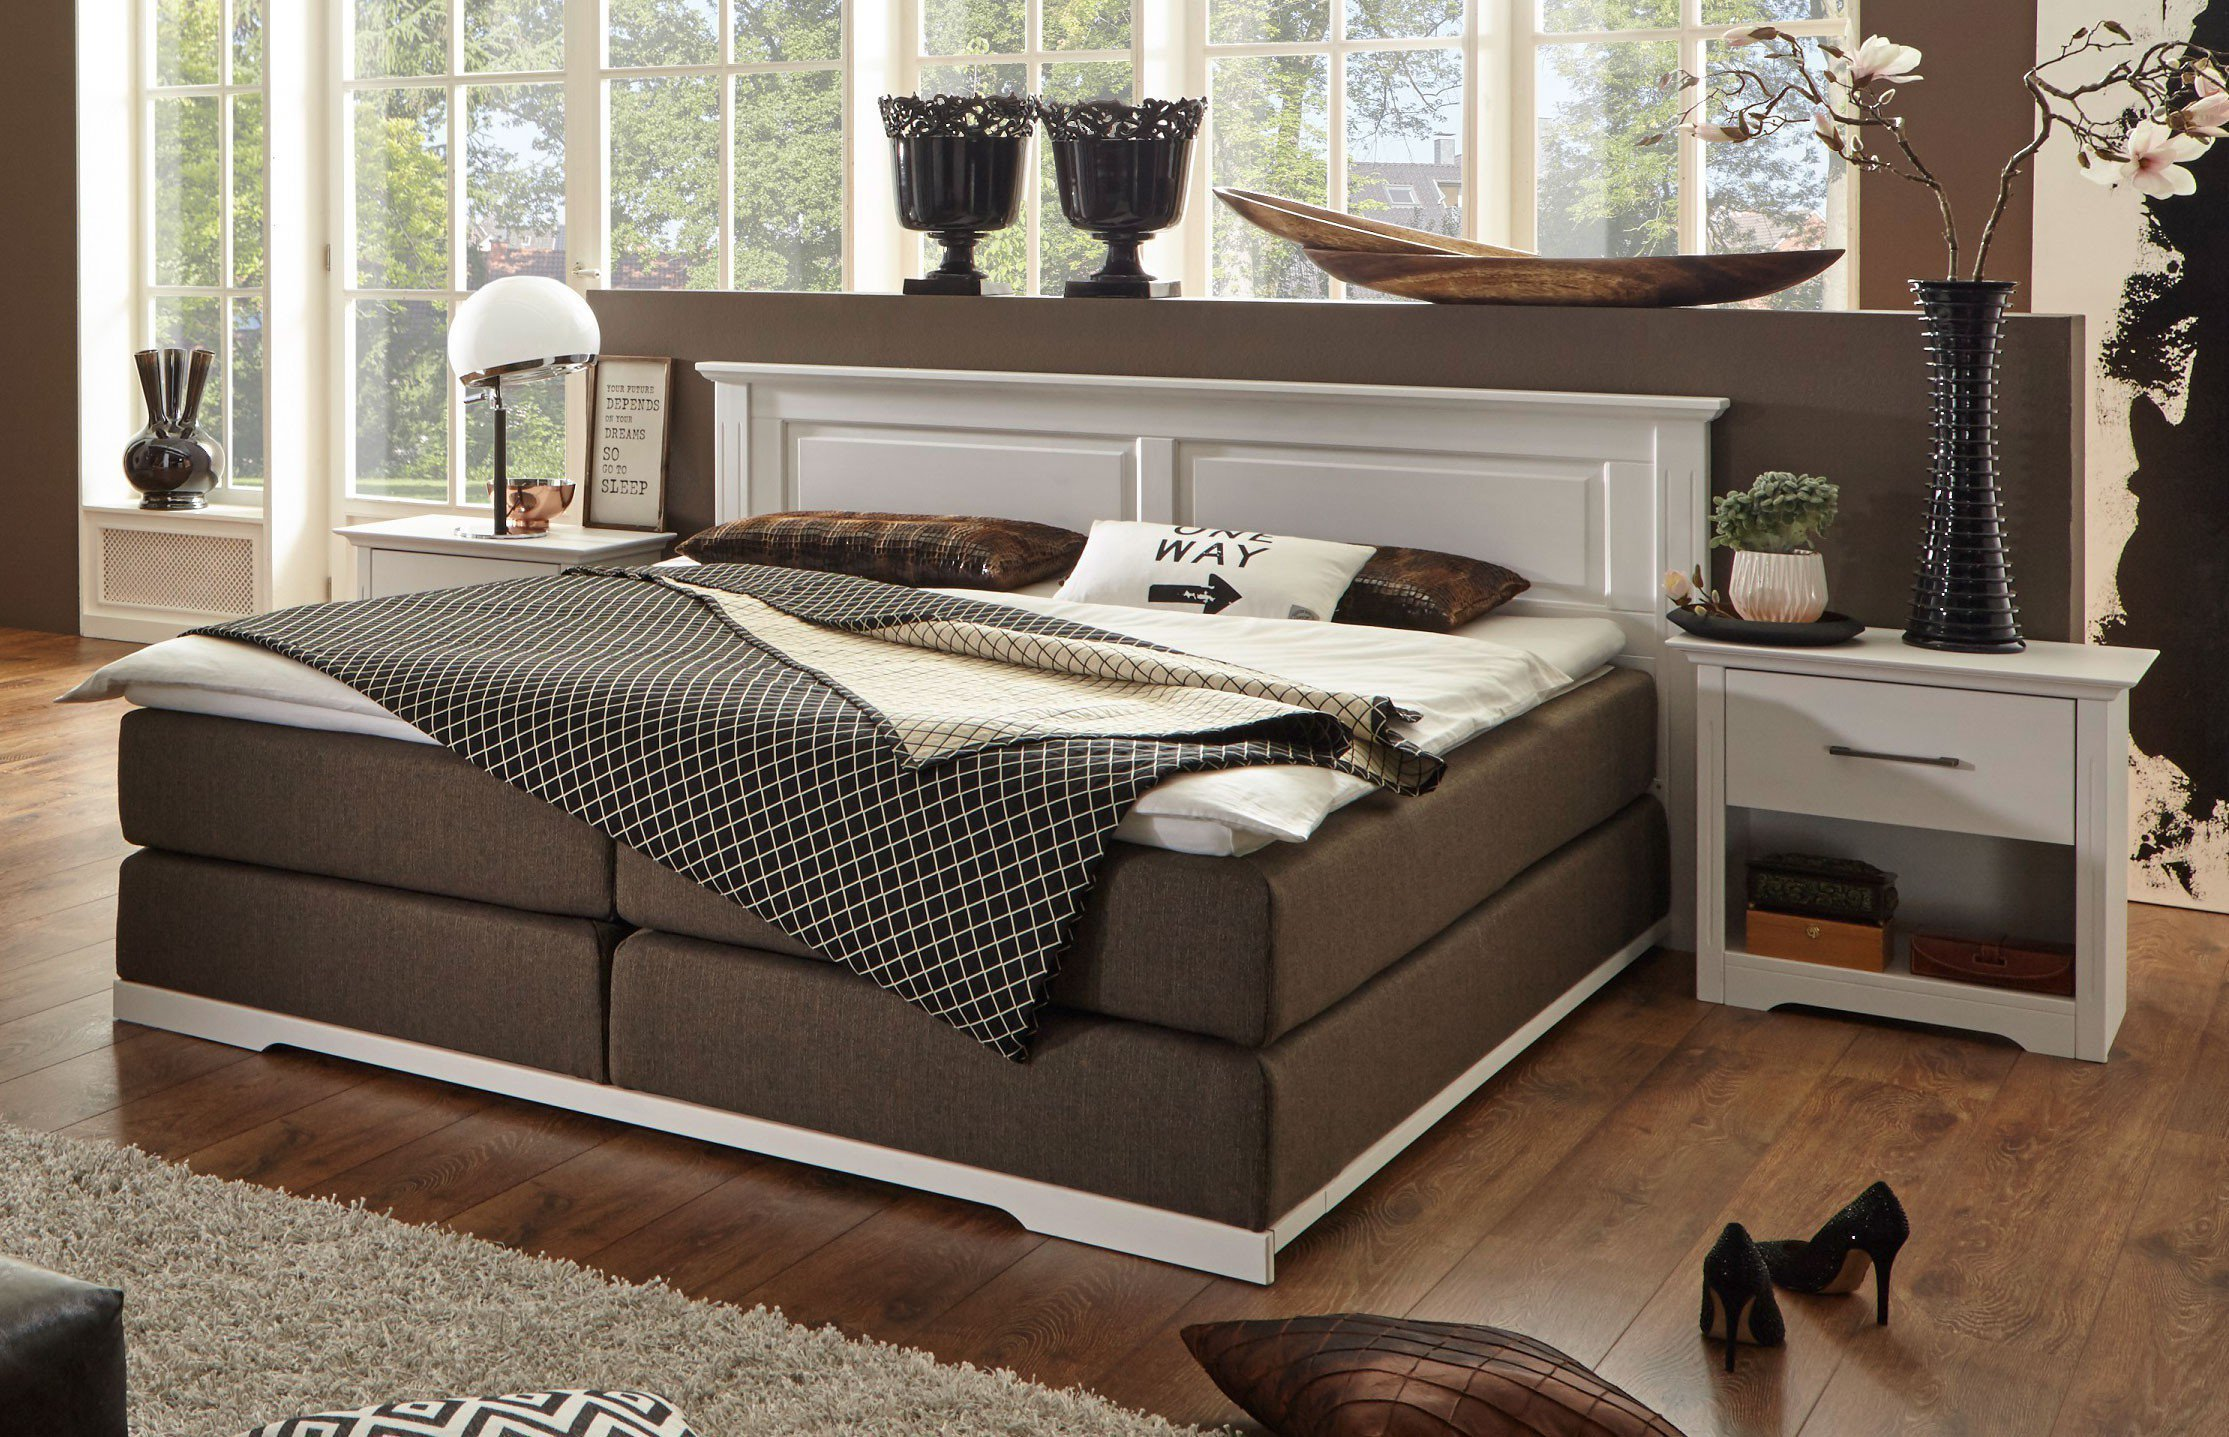 boxspringbett im angebot boxspringbett angebot haus ideen boxspringbett von poco. Black Bedroom Furniture Sets. Home Design Ideas